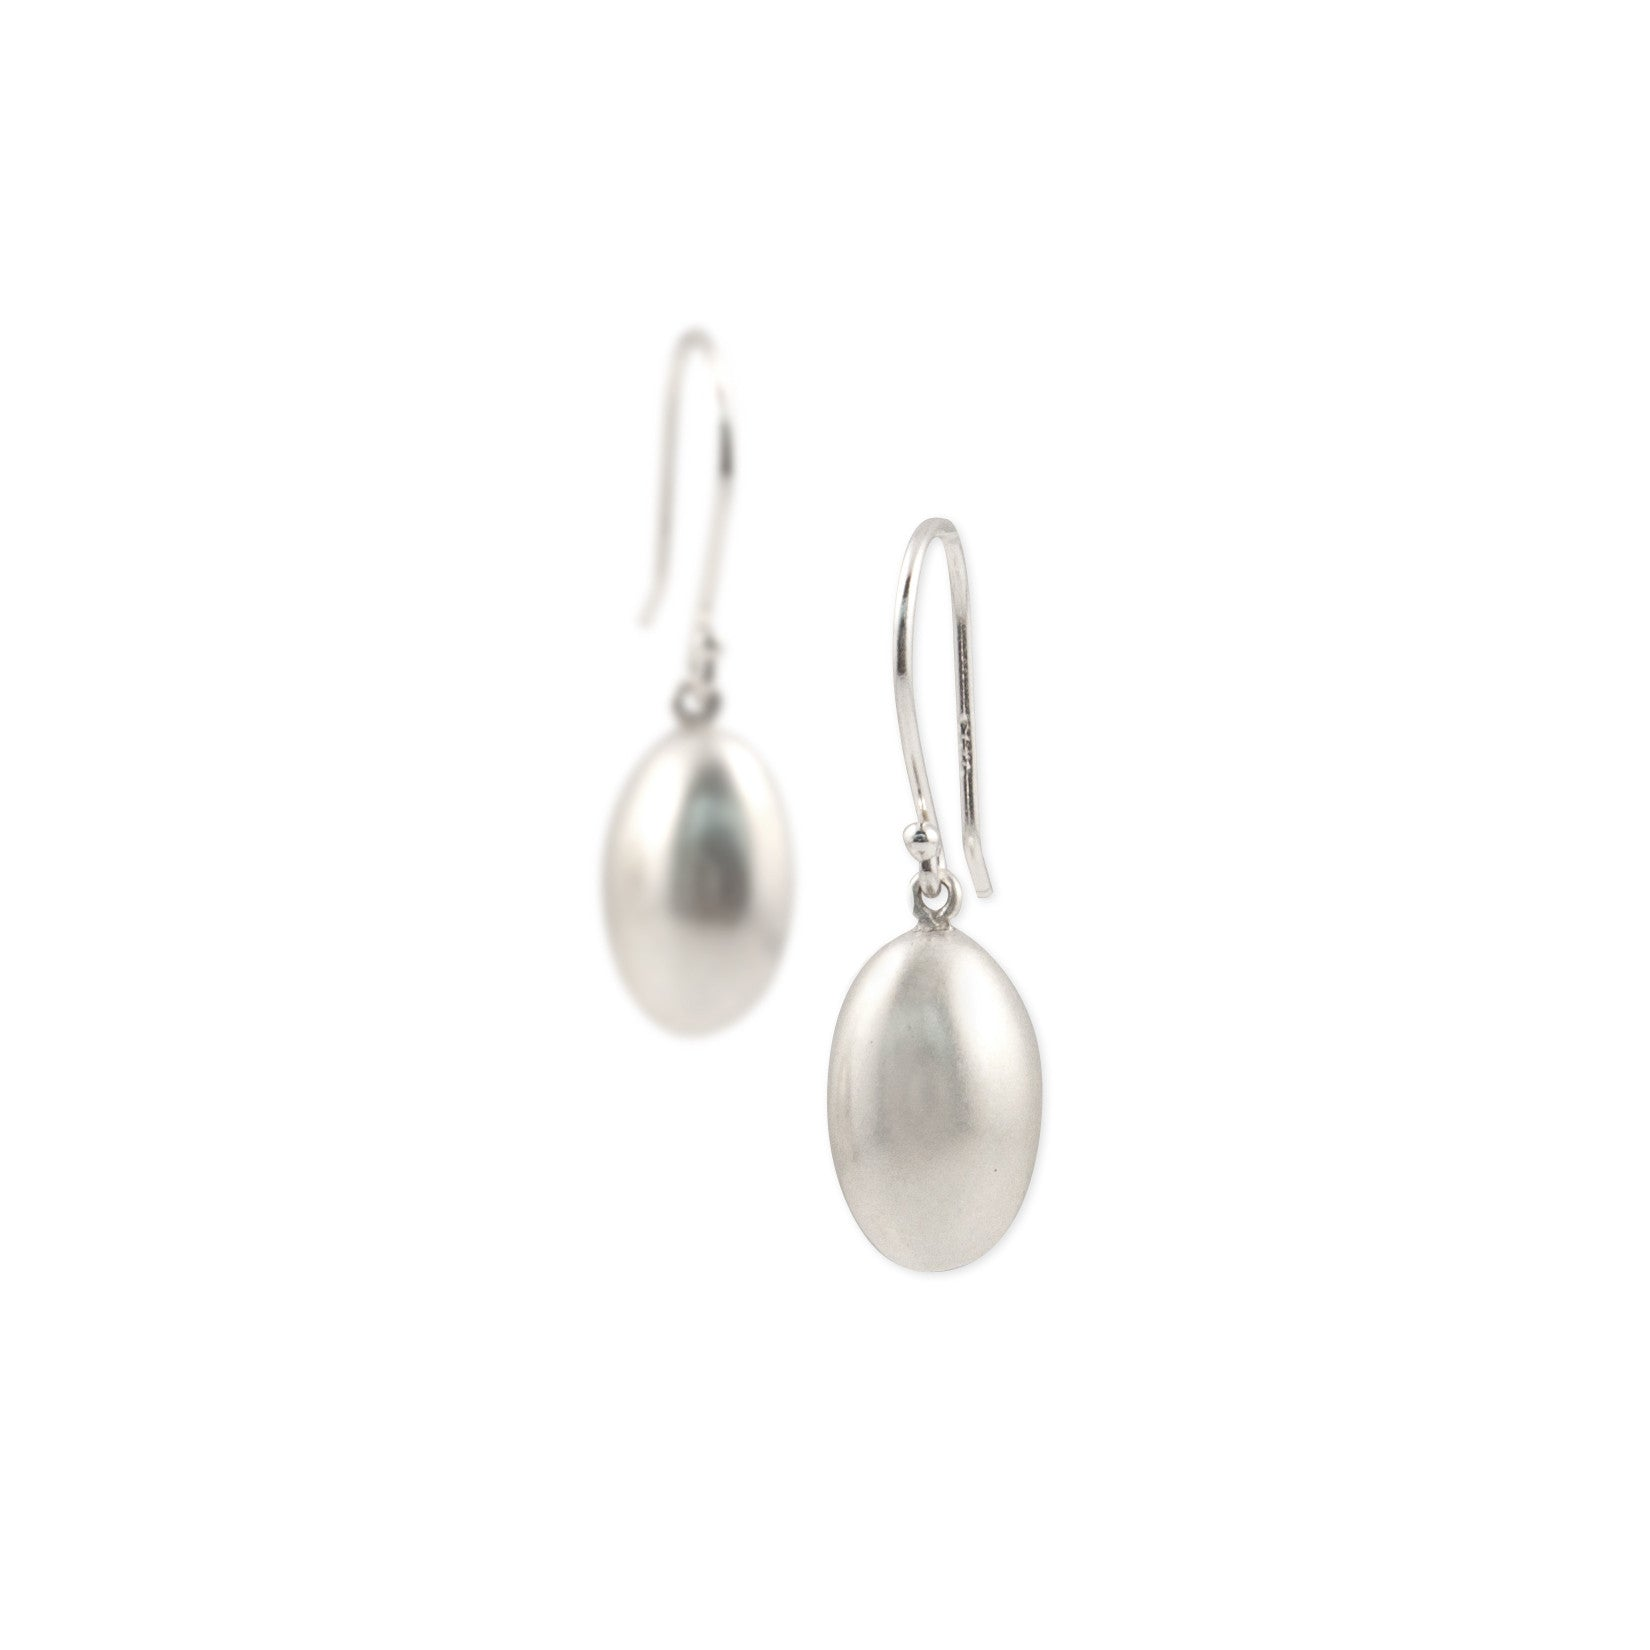 sterling silver egg drop earrings